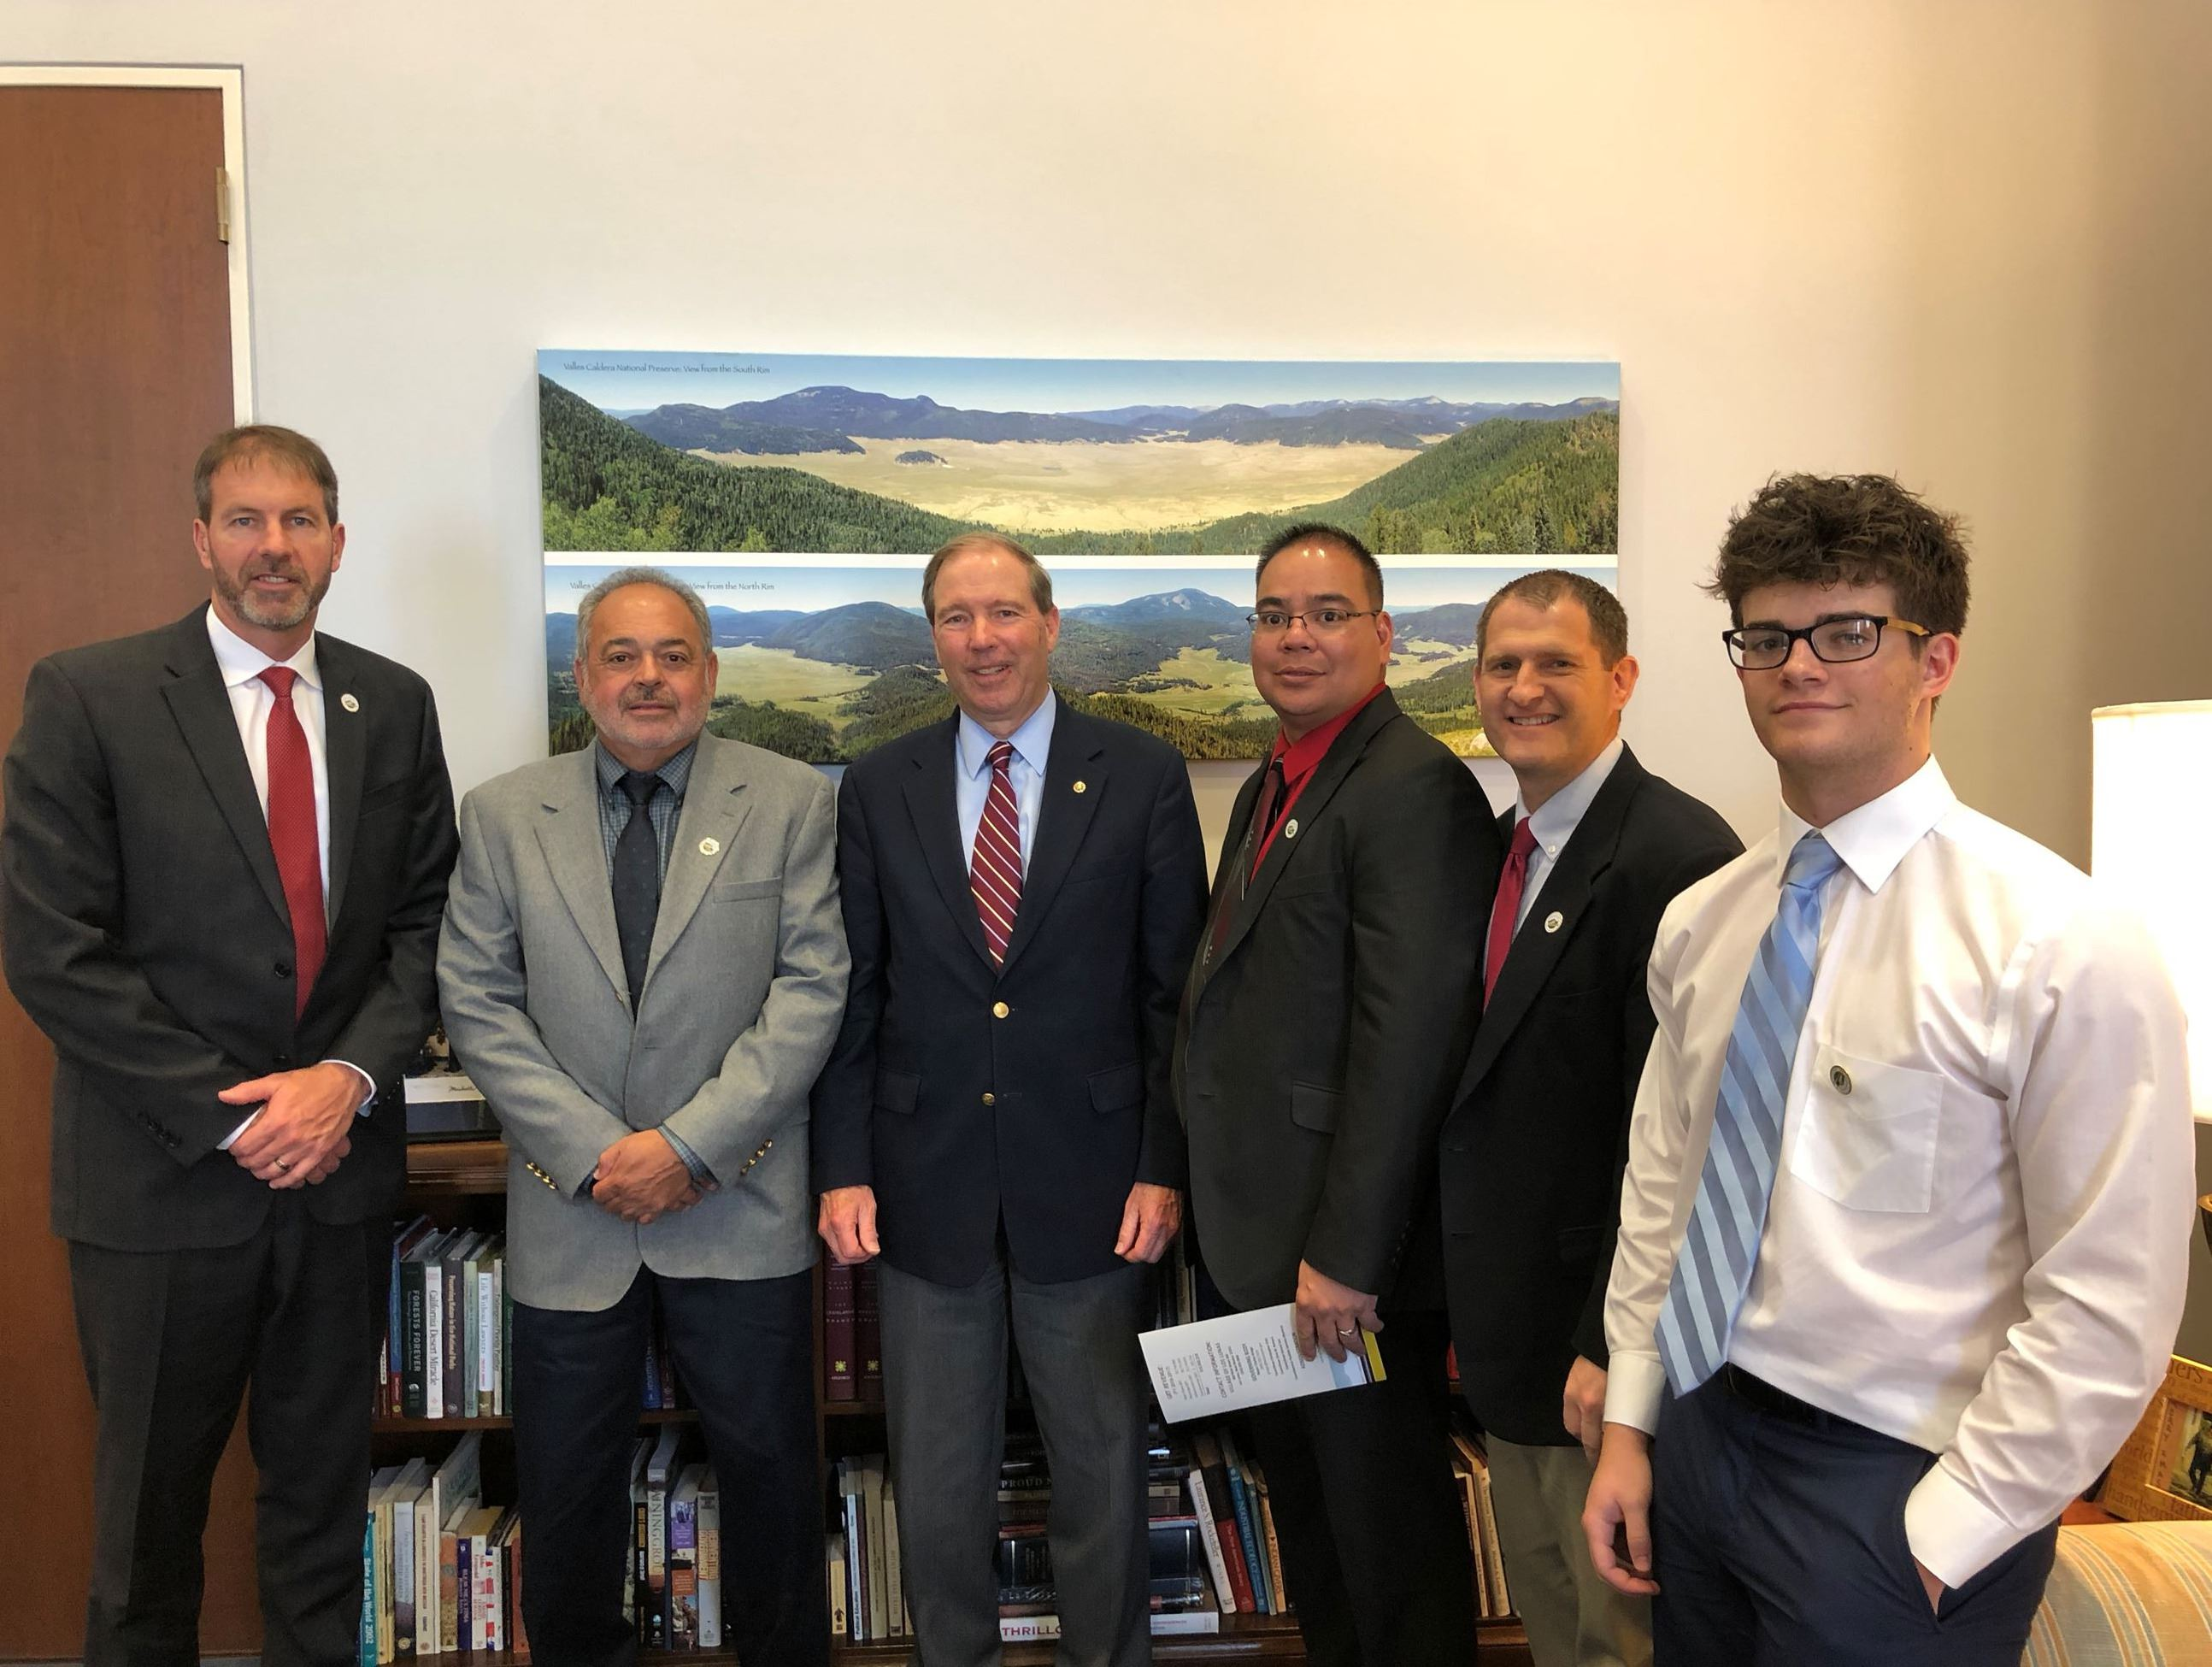 2018 Congressional Visit with Sen. Tom Udall, Sen. Martin Heinrich and Rep. Steve Pearce, April 19,